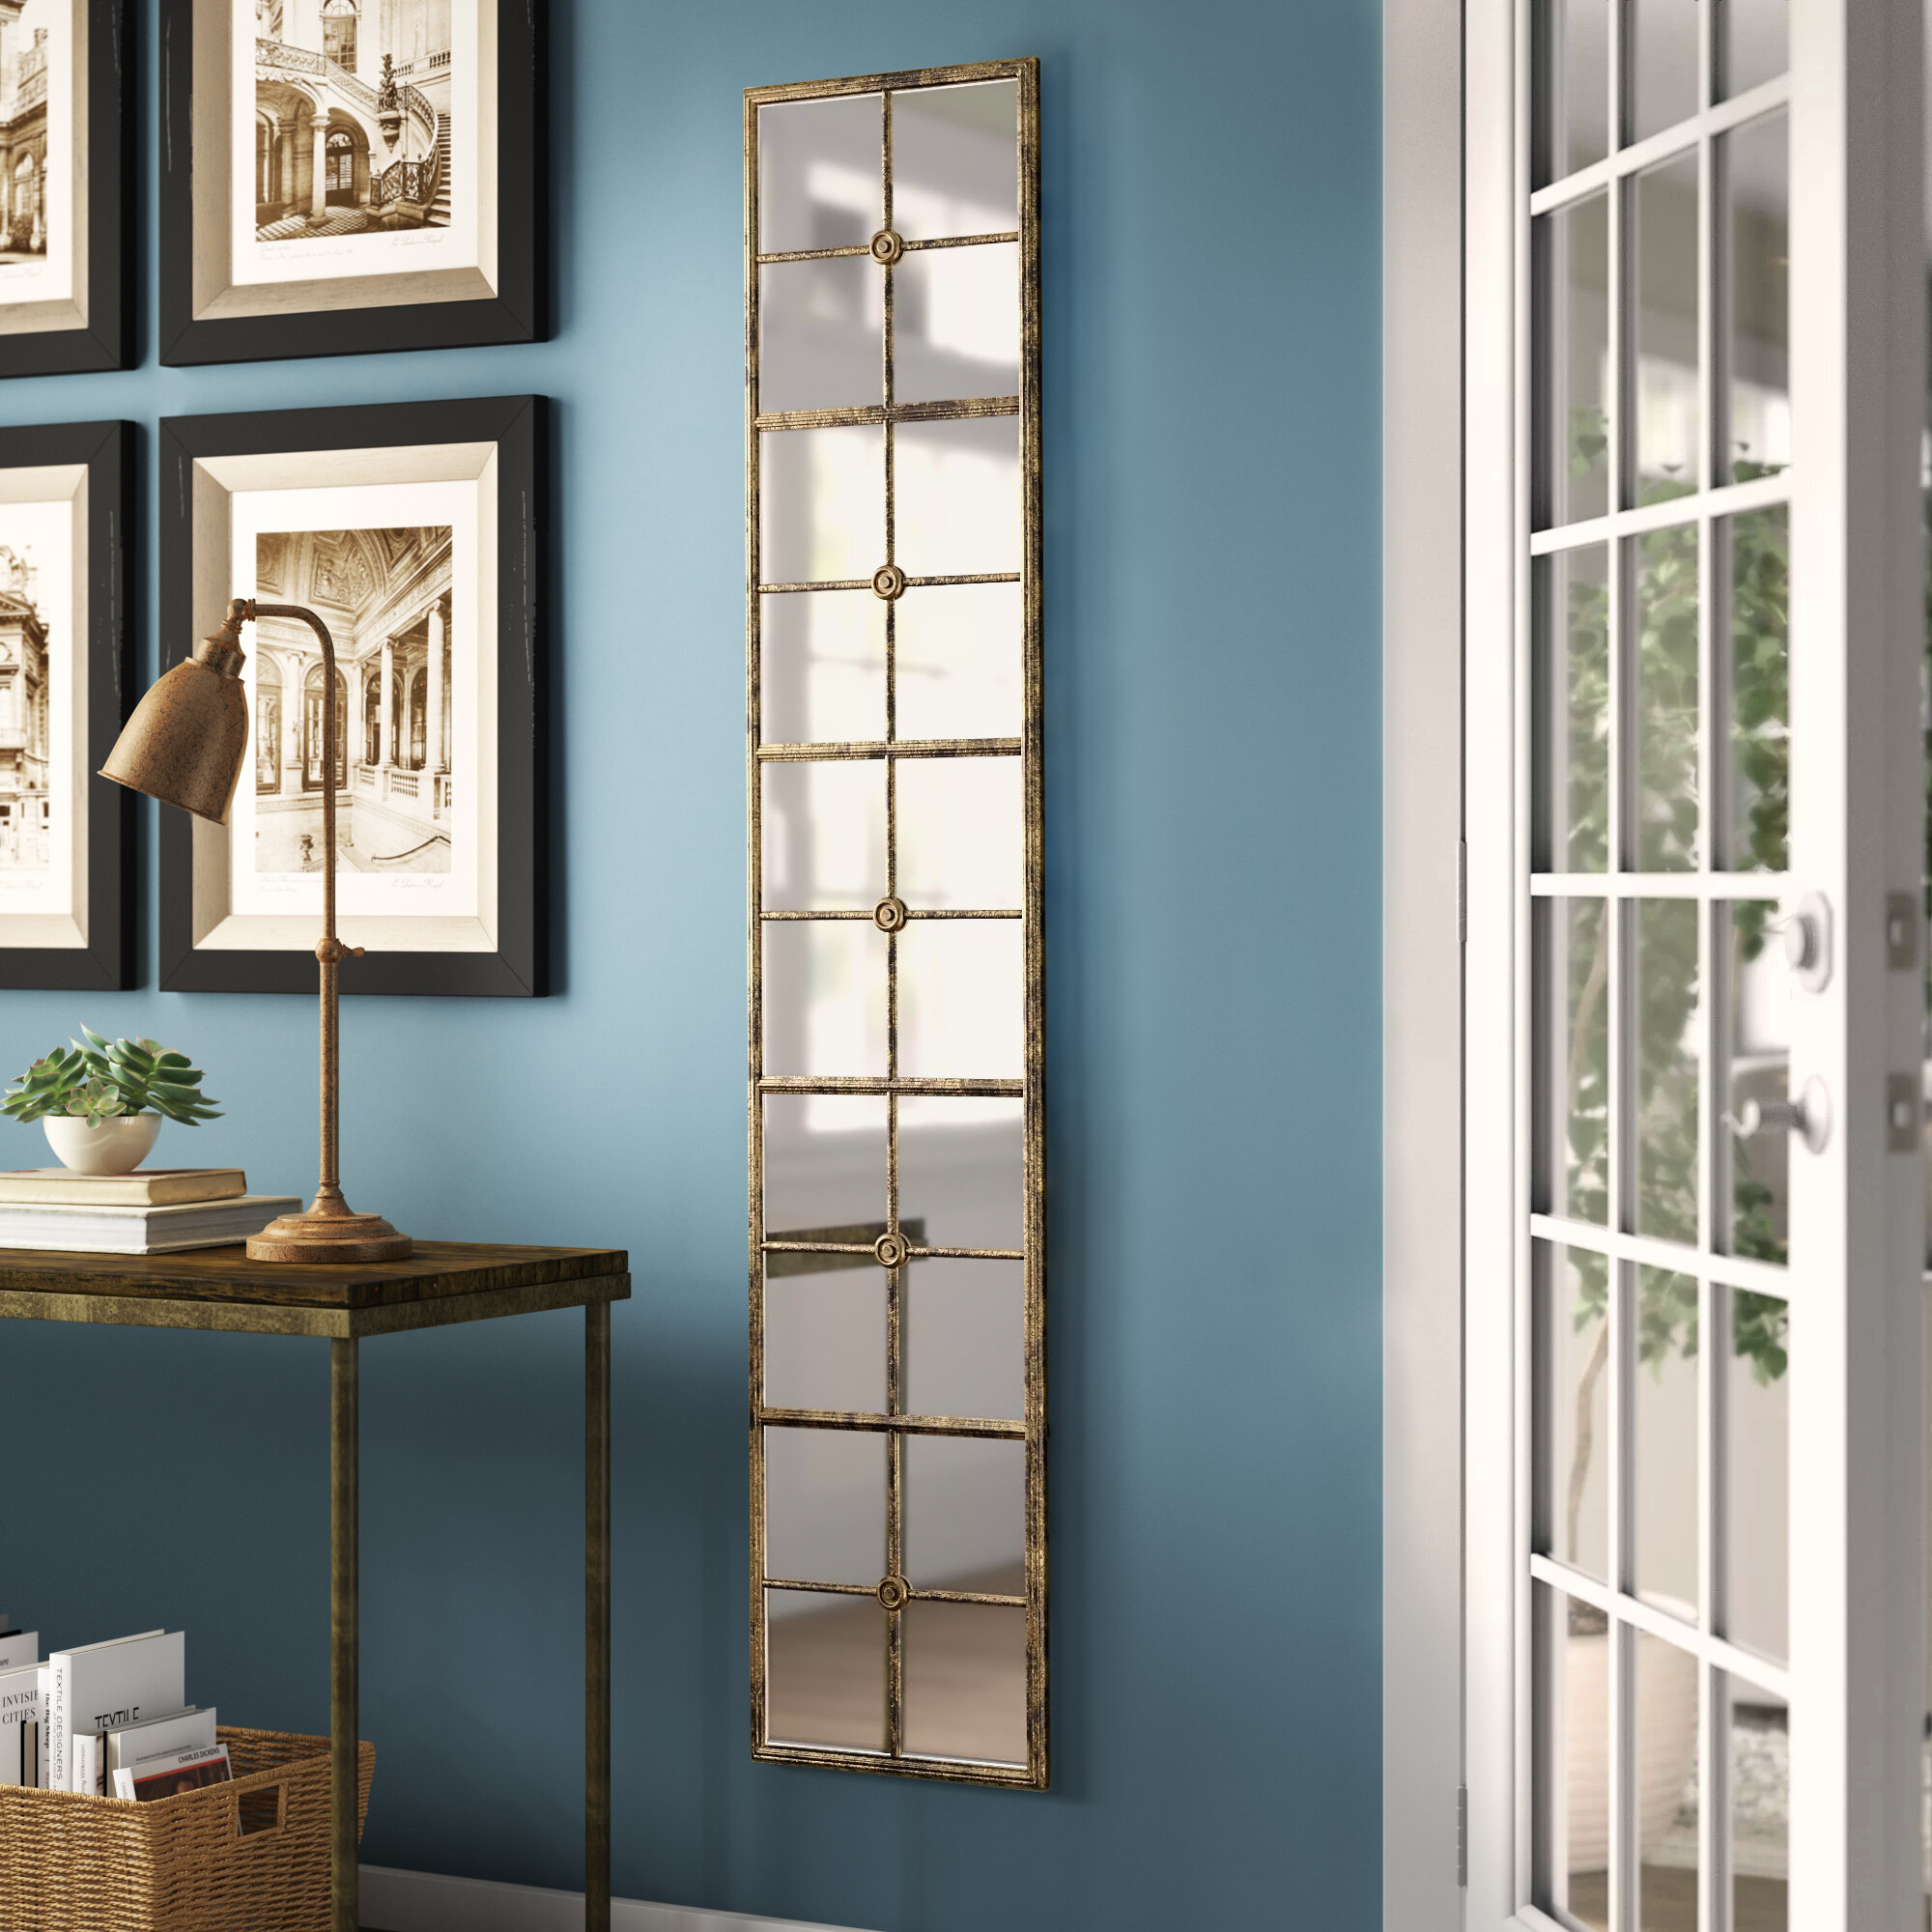 Rhonda Modern & Contemporary Full Length Mirror Inside 2 Piece Priscilla Square Traditional Beveled Distressed Accent Mirror Sets (Image 14 of 20)